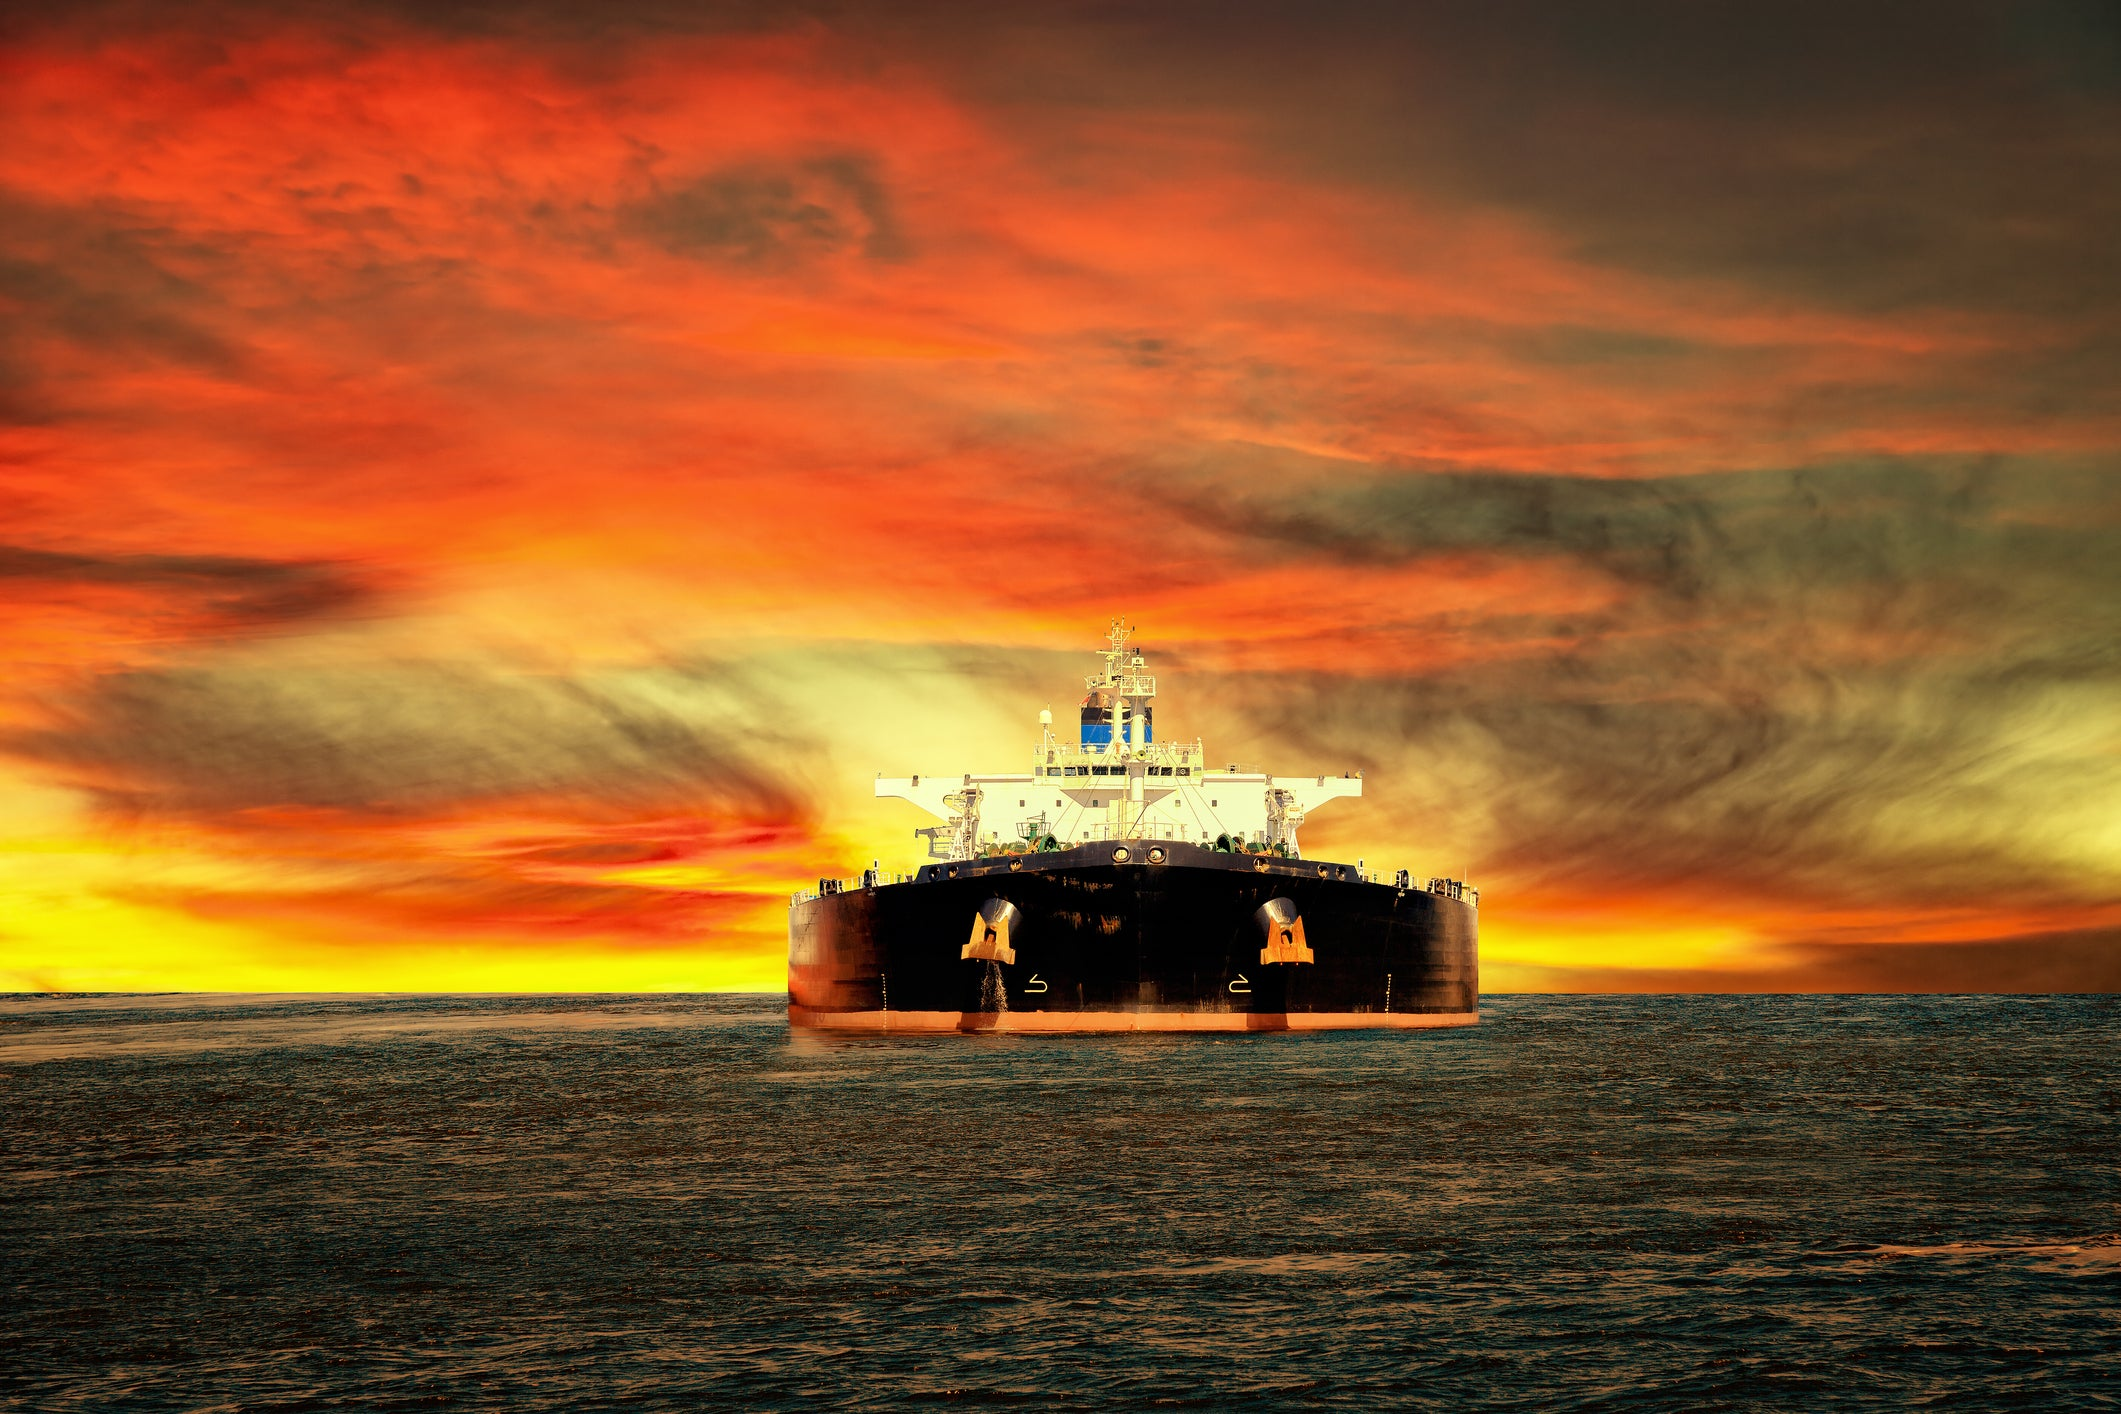 This 1 State Is Turning America Into an Oil-Exporting Juggernaut | The Motley Fool